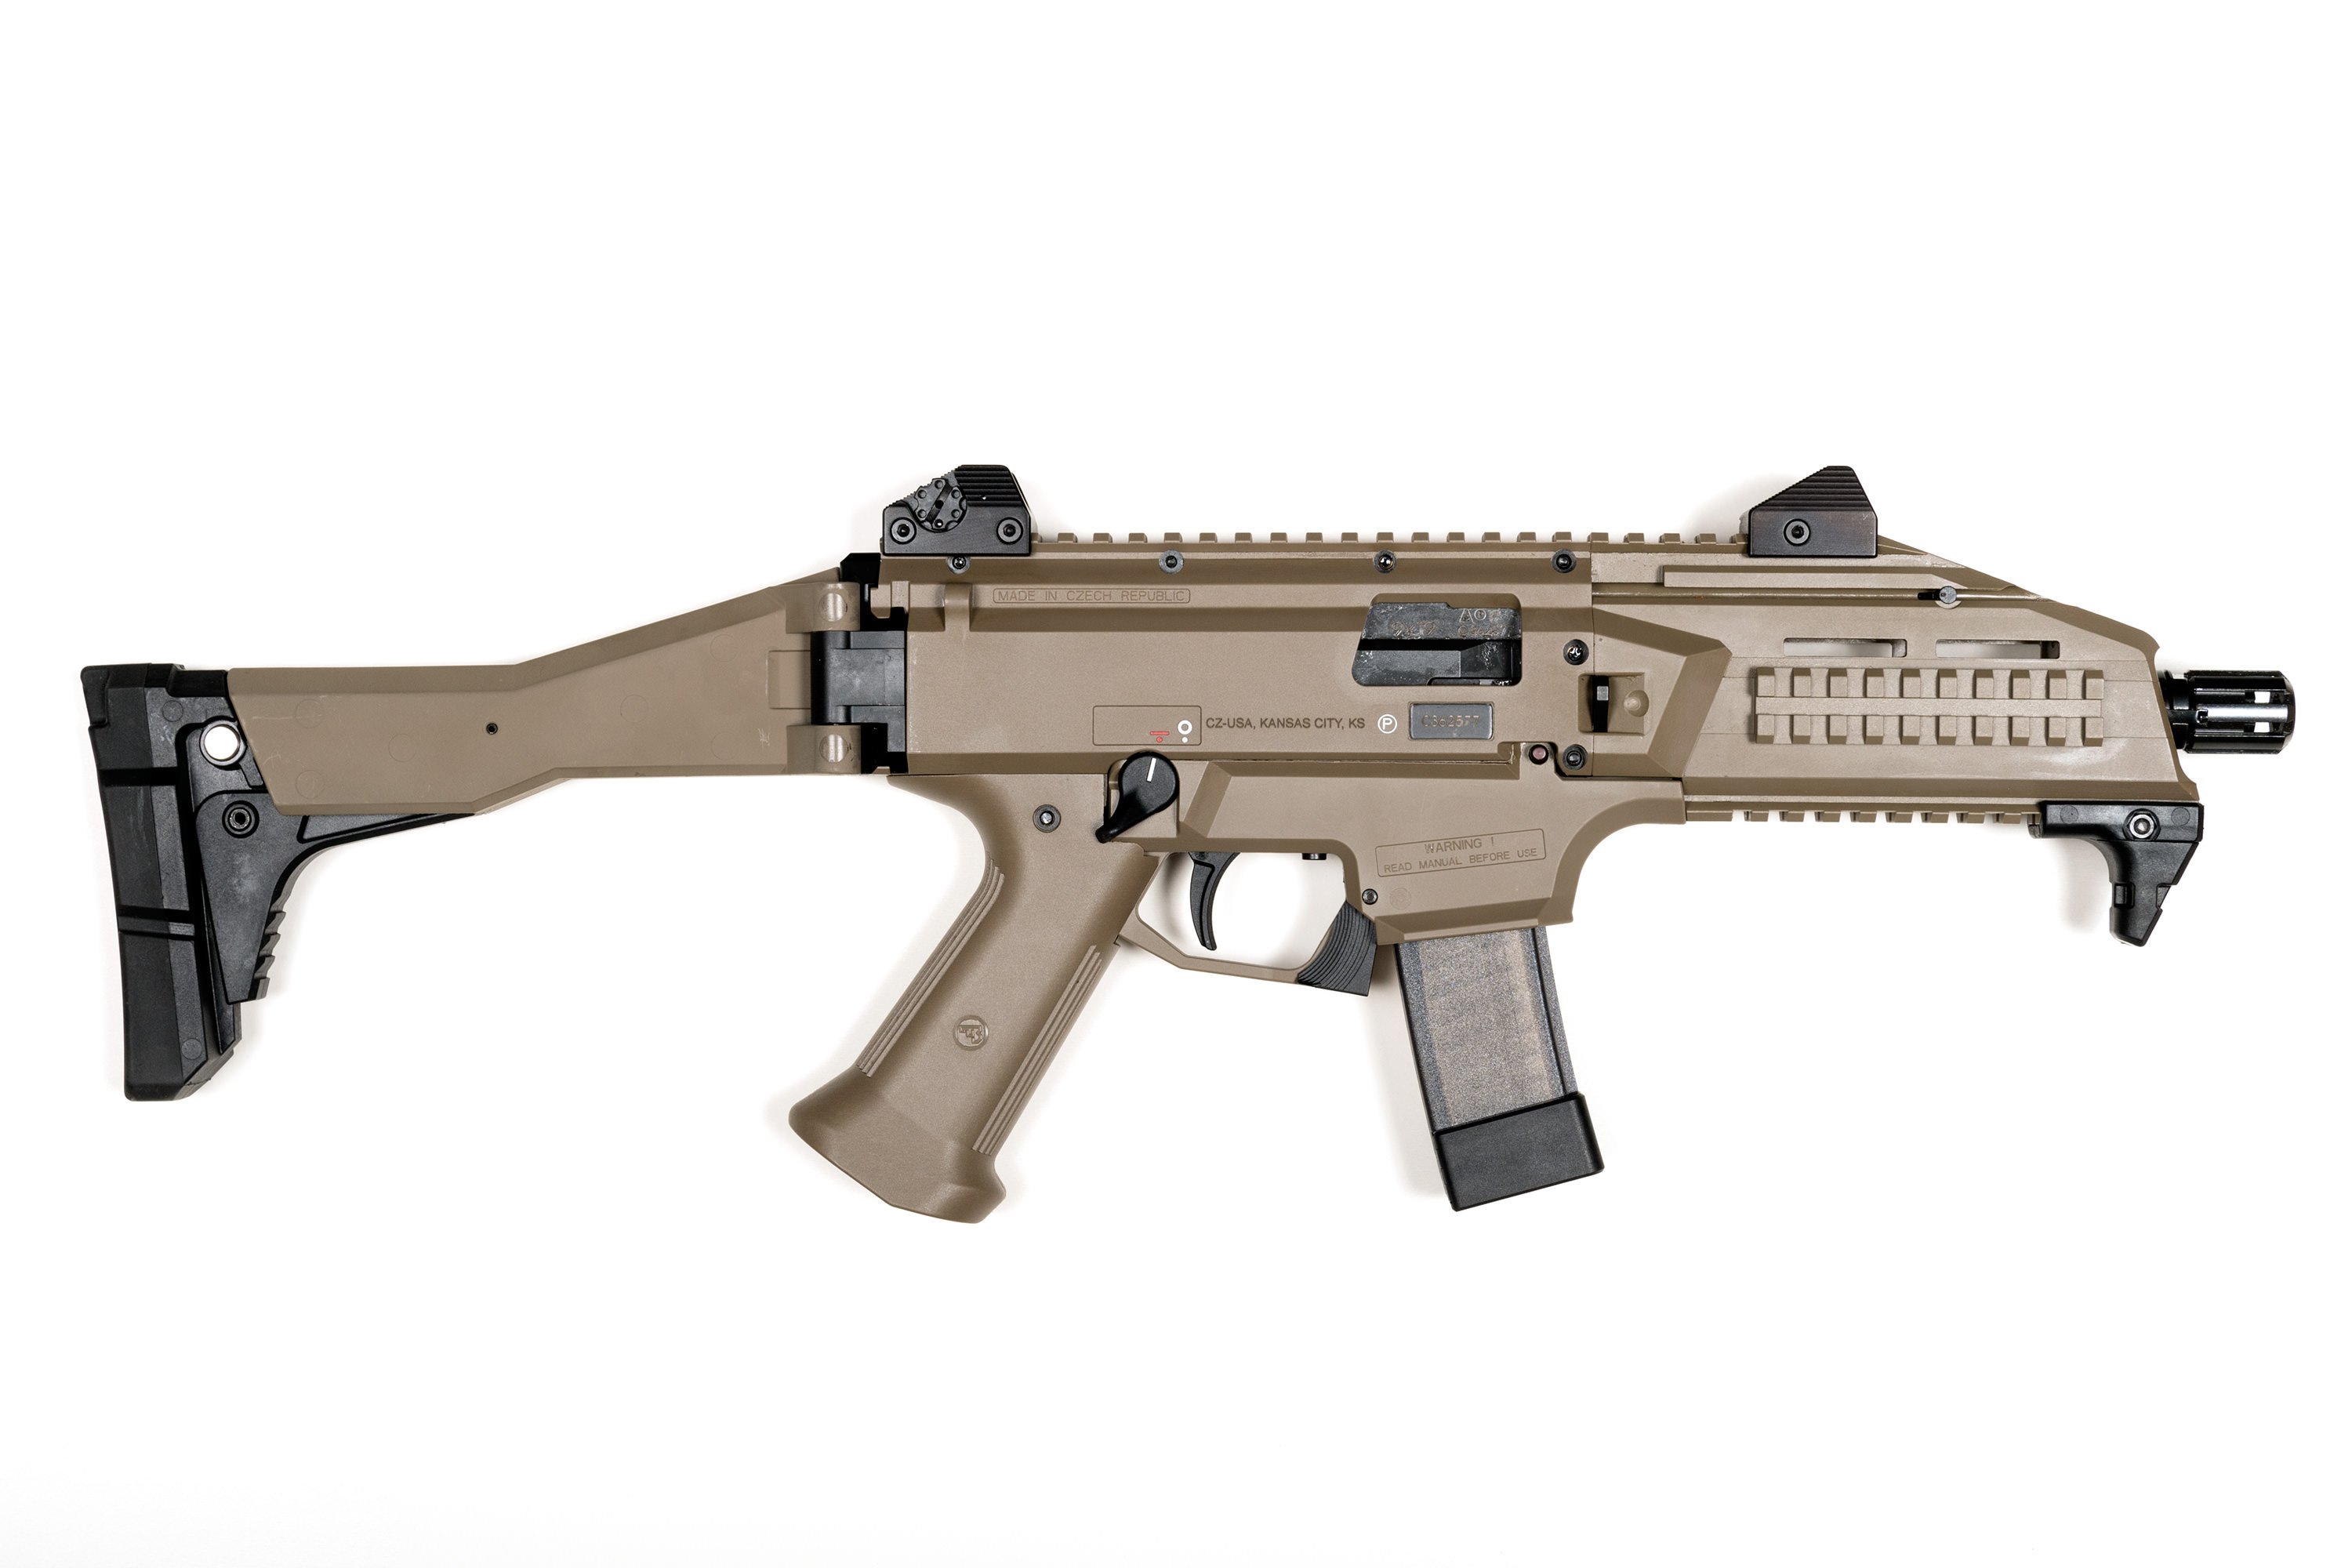 CZ Scorpion Evo 3 S1 9mm in full FDE